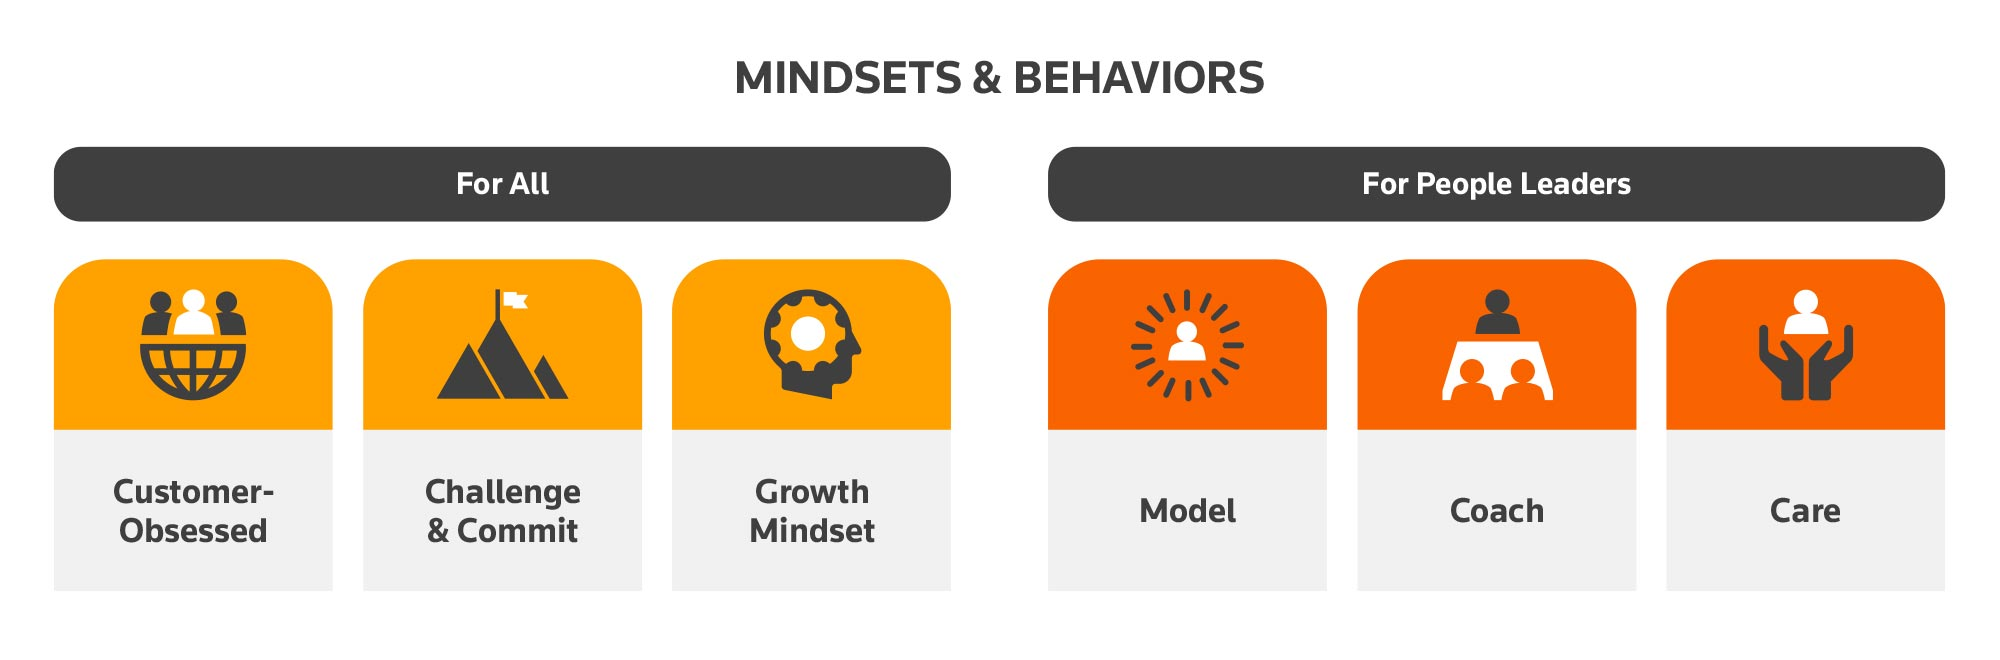 Mindsets and Behaviors Graphic